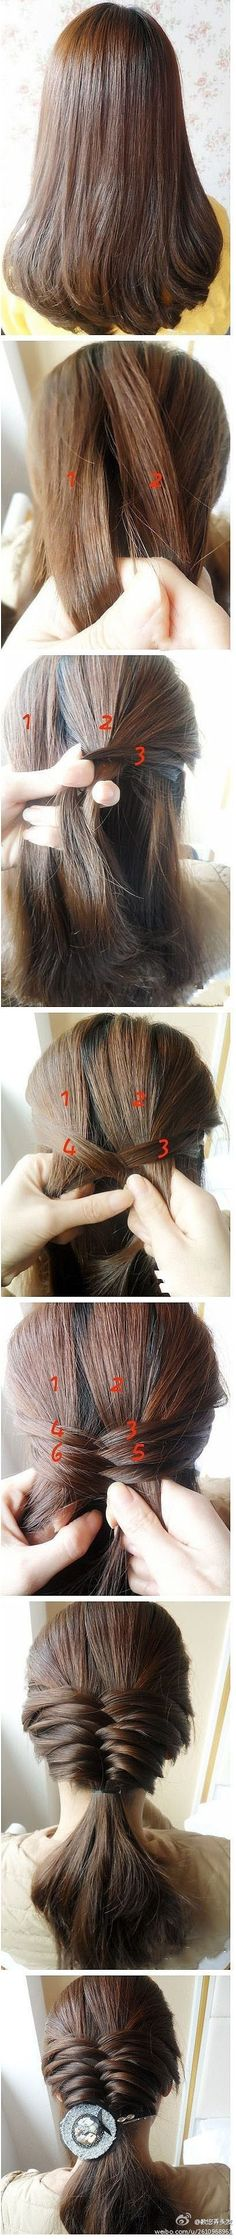 Woven Hair step by step!!!